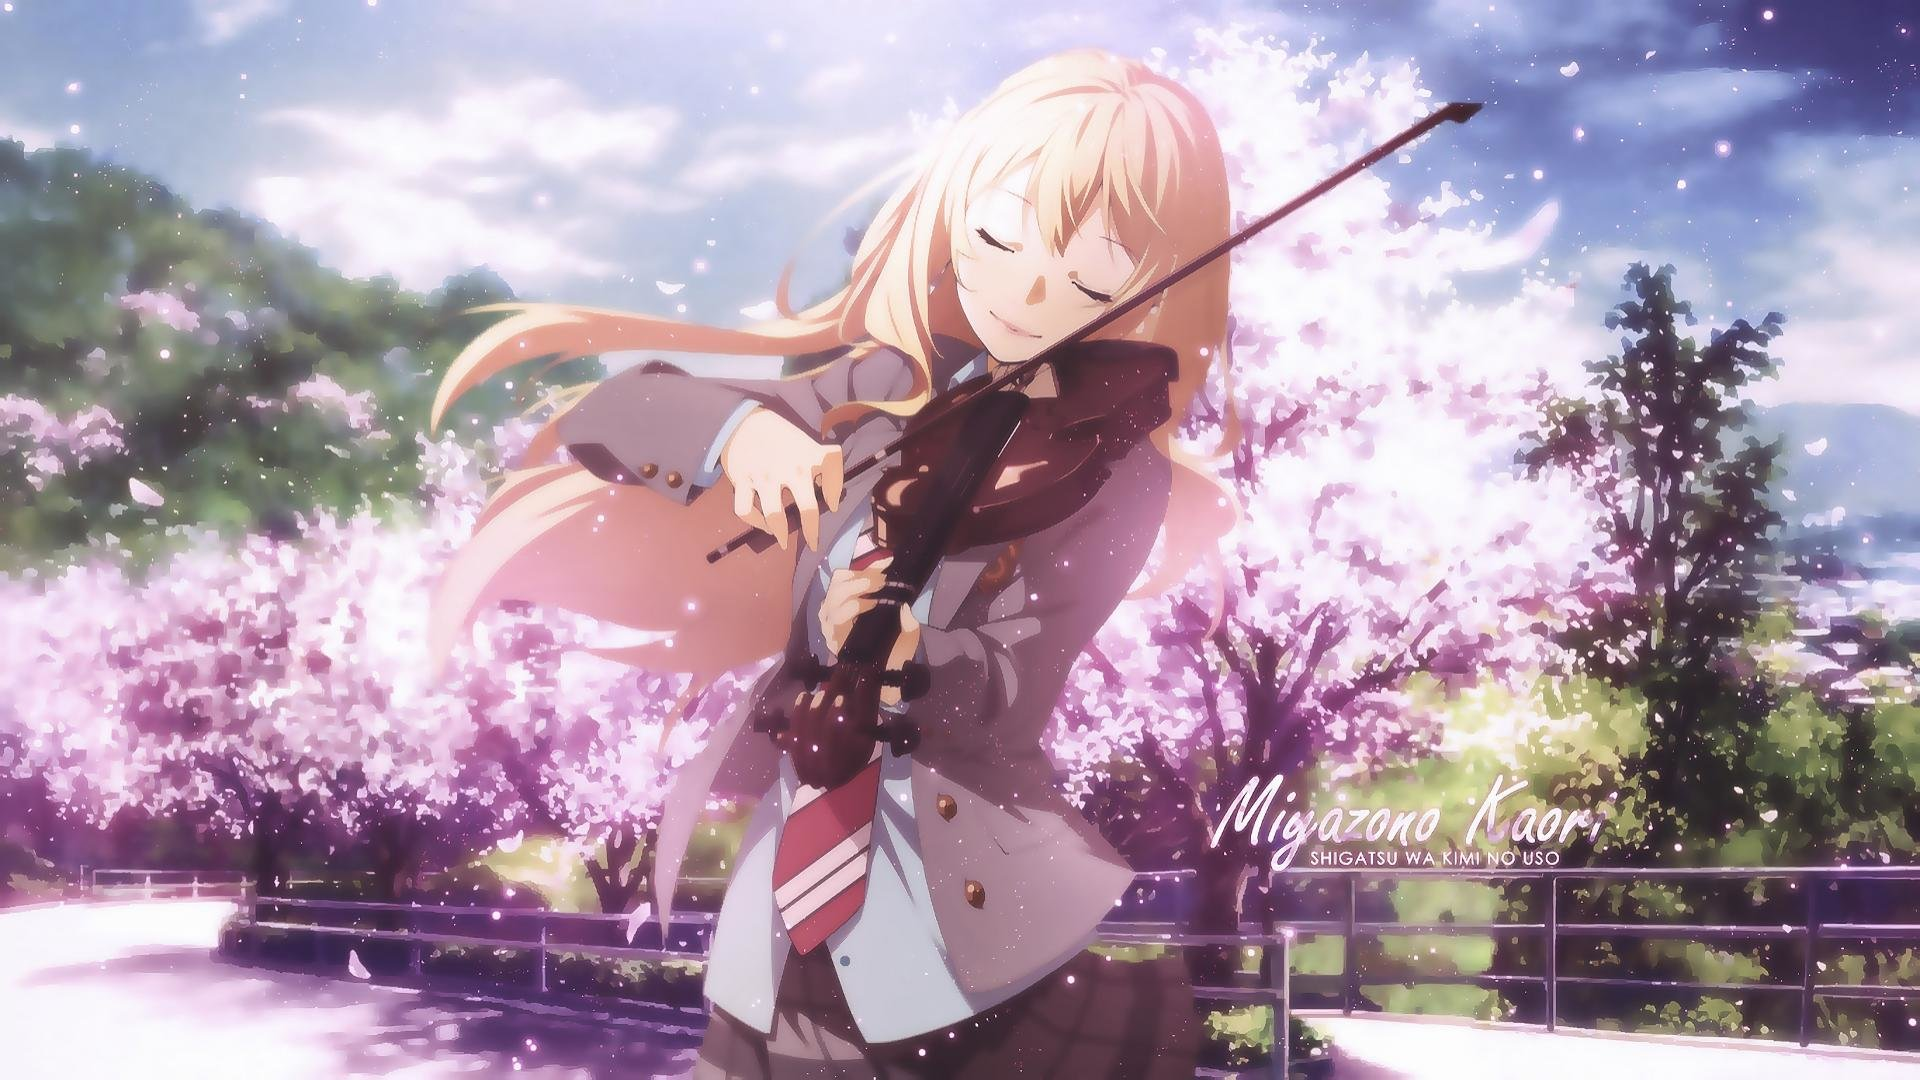 Your Lie In April Kaori Wallpaper Posted By Michelle Simpson